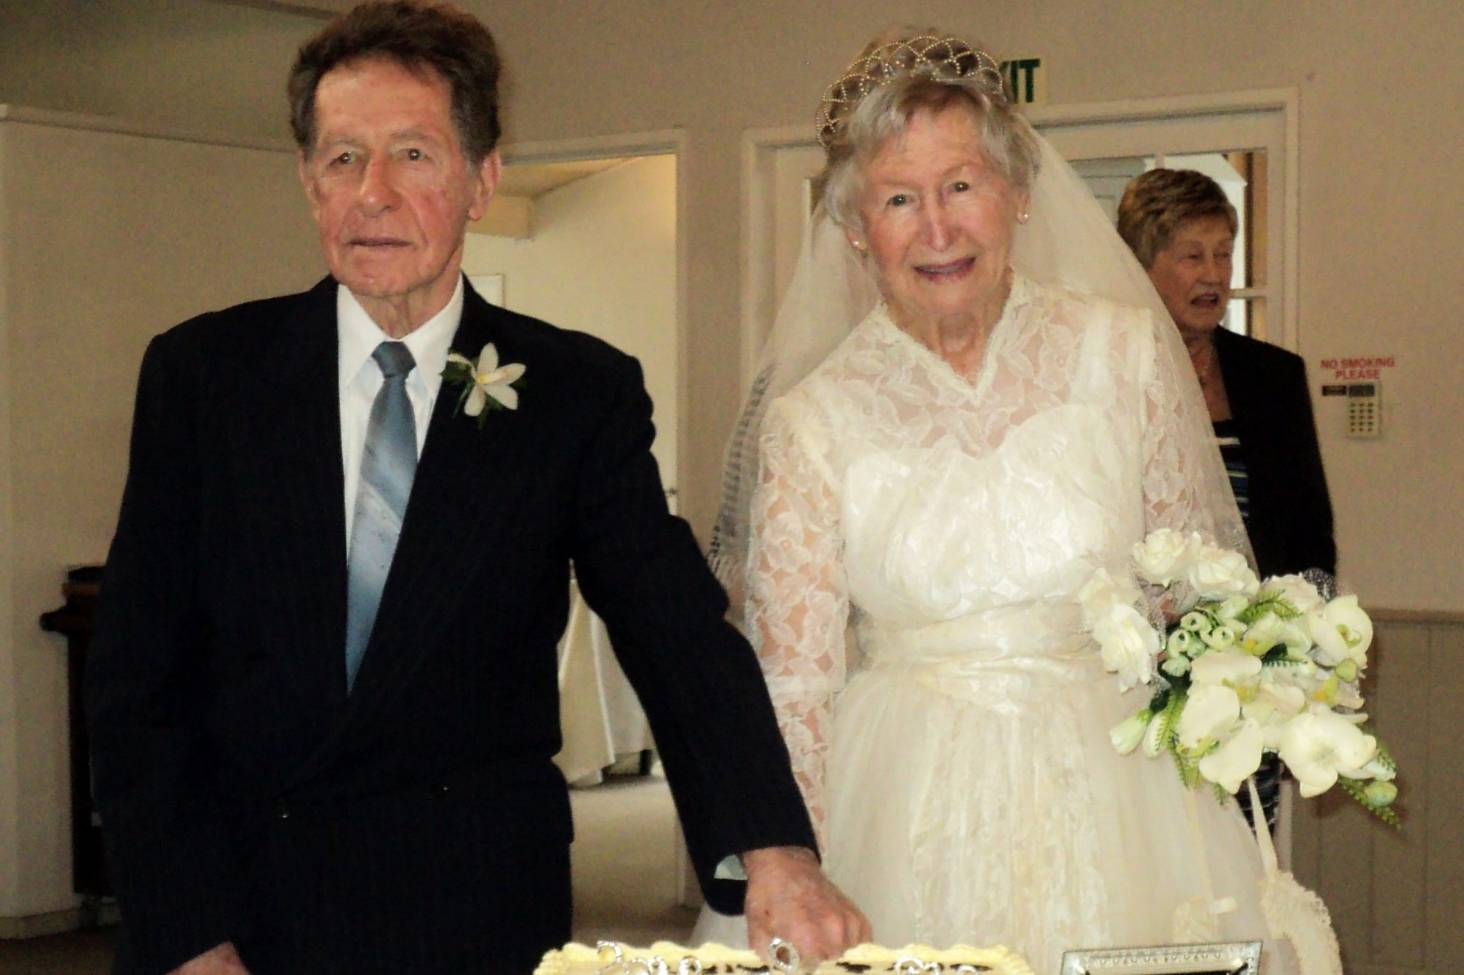 d76c0bad36a Auckland bride fits wedding dress 60 years later to celebrate anniversary